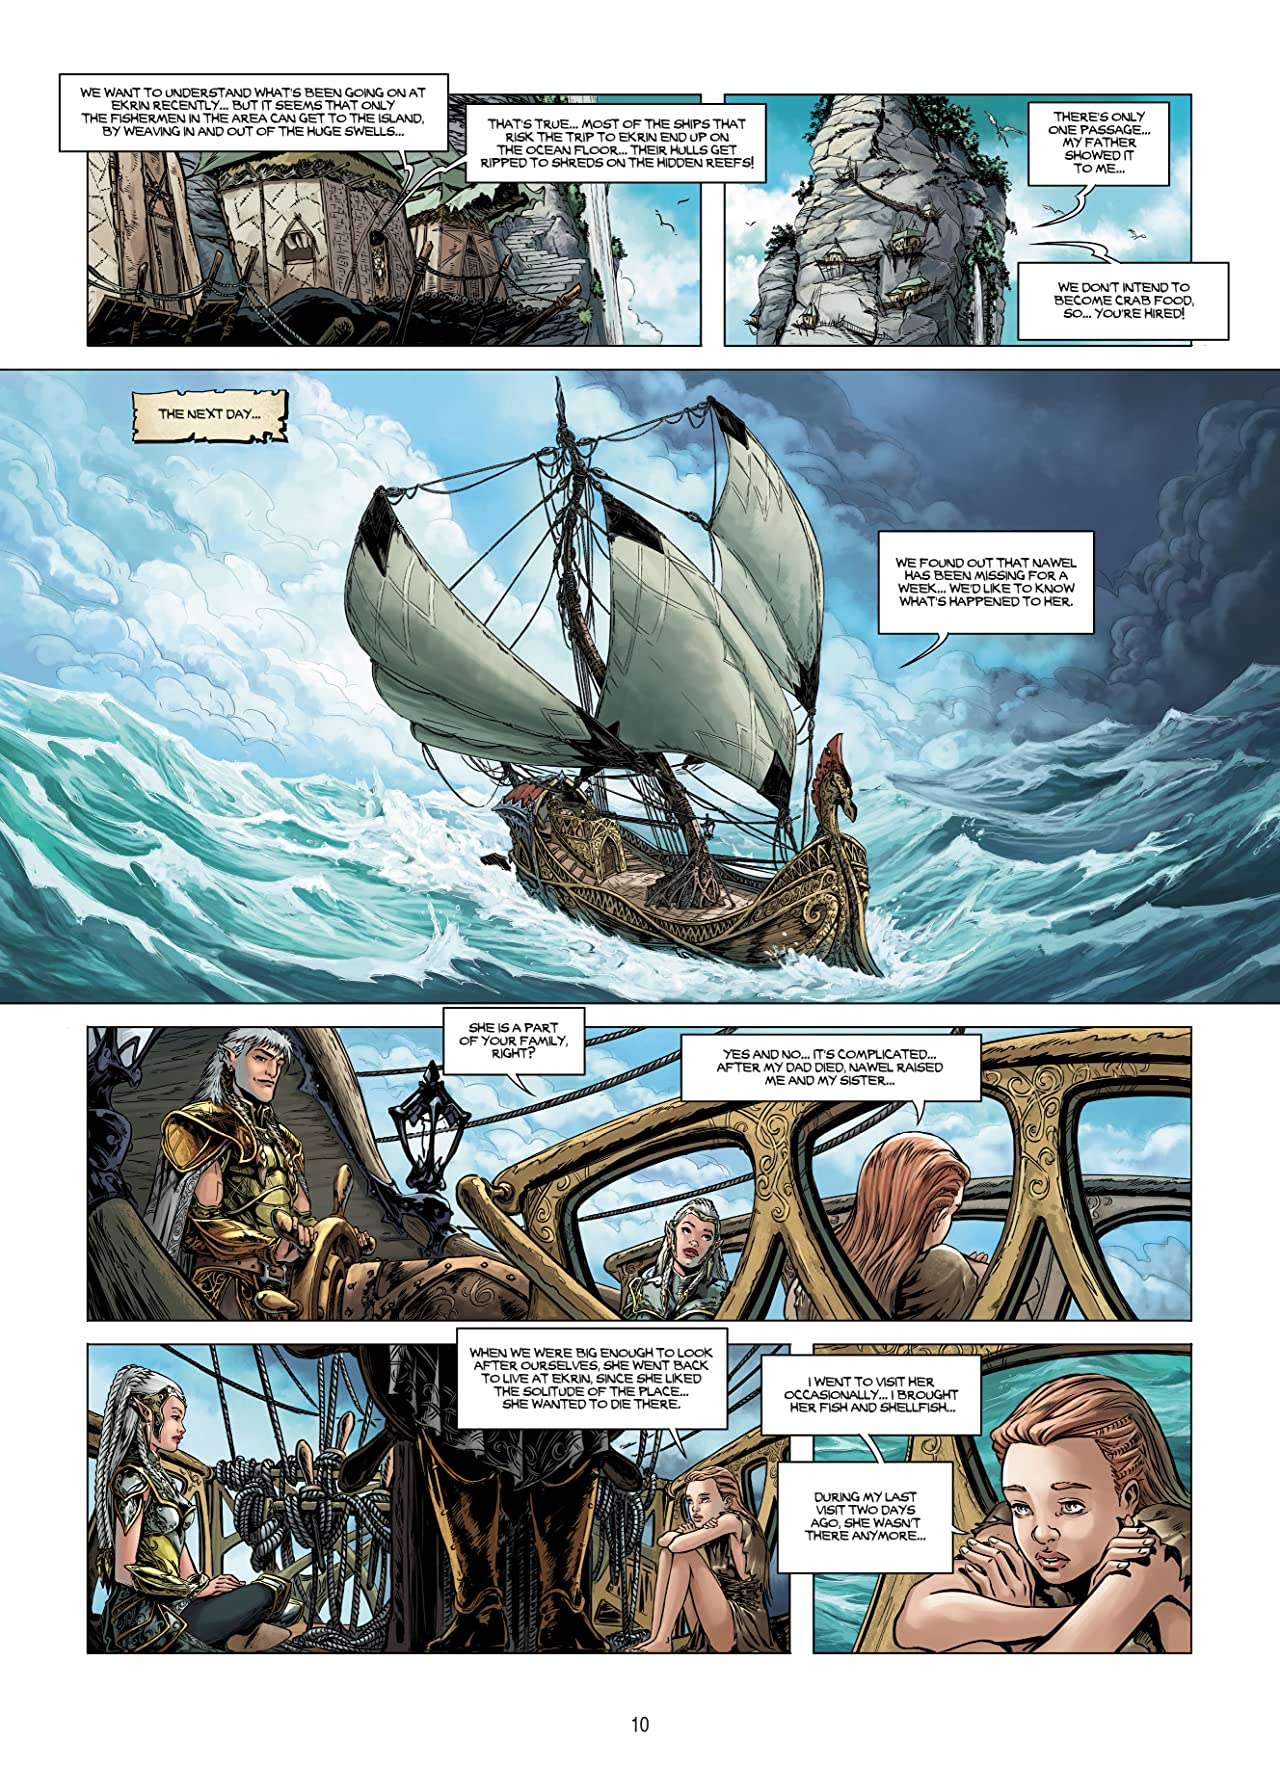 Elves Vol. 19: The Hermit of Ourann